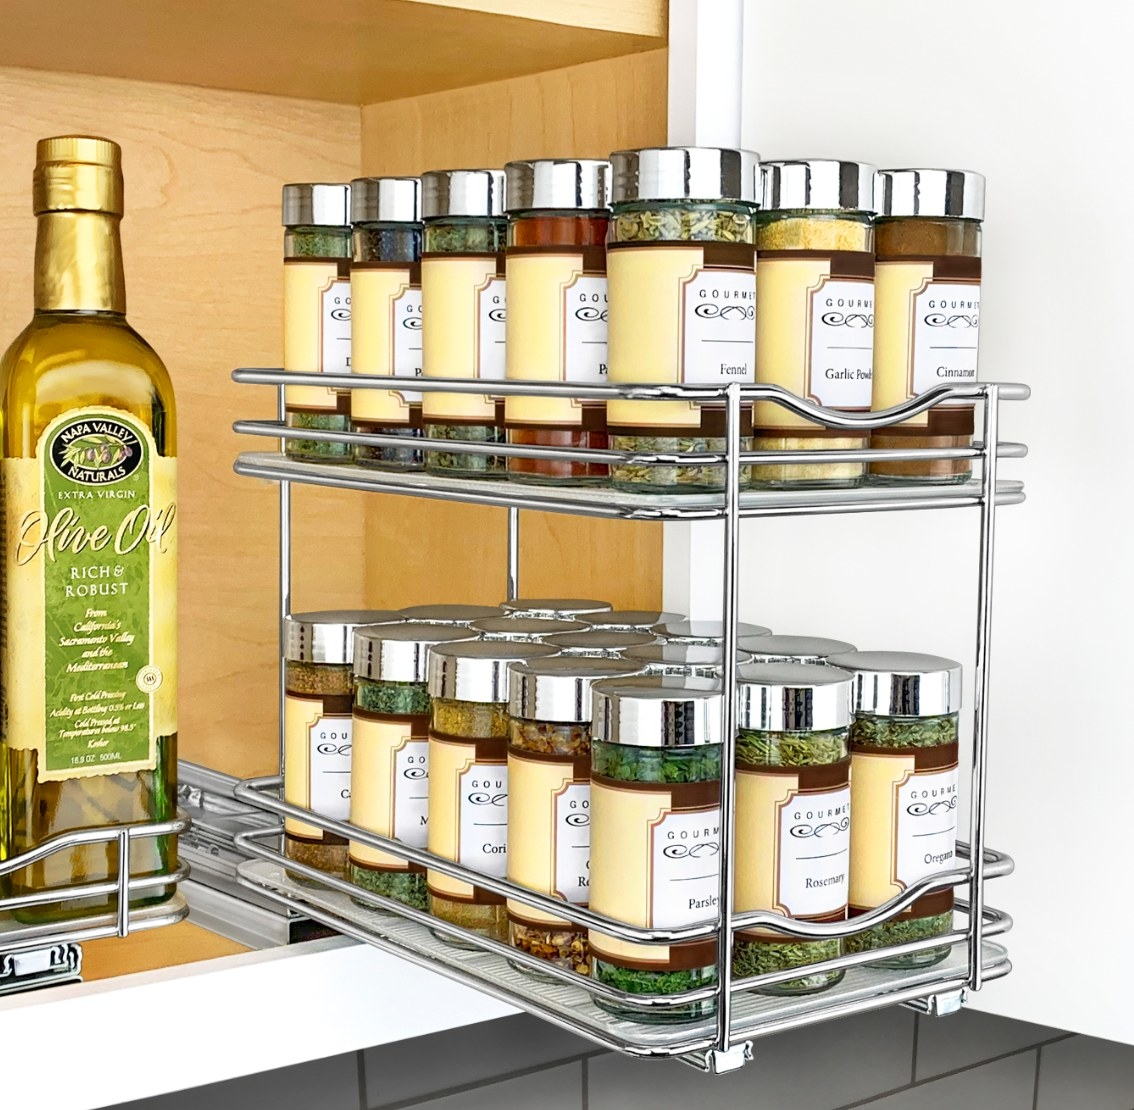 The double spice rack